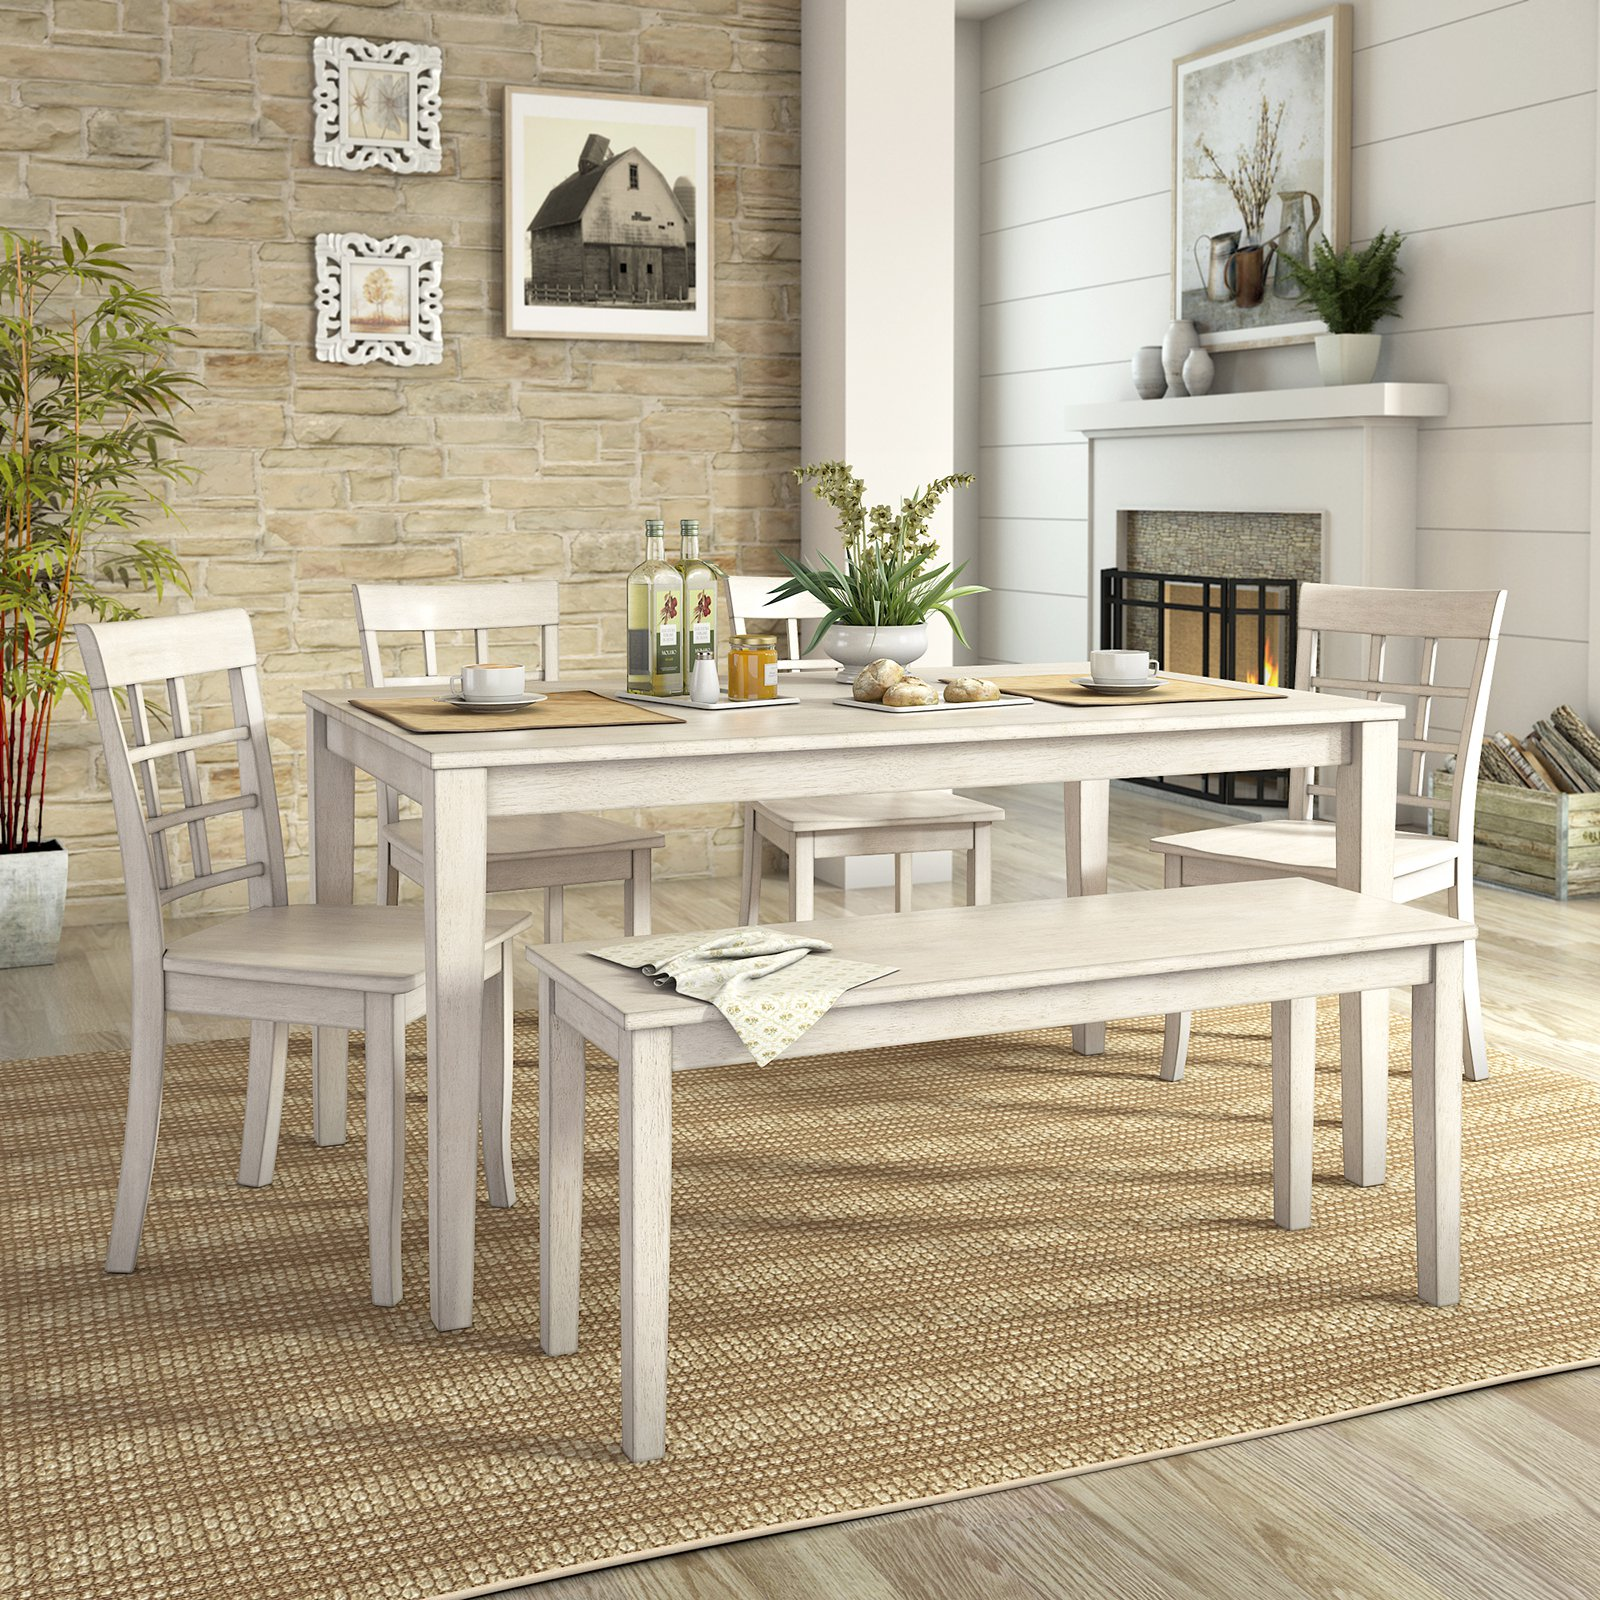 Large Dining Room Set: Lexington Large Dining Set With Bench And 4 Window Back